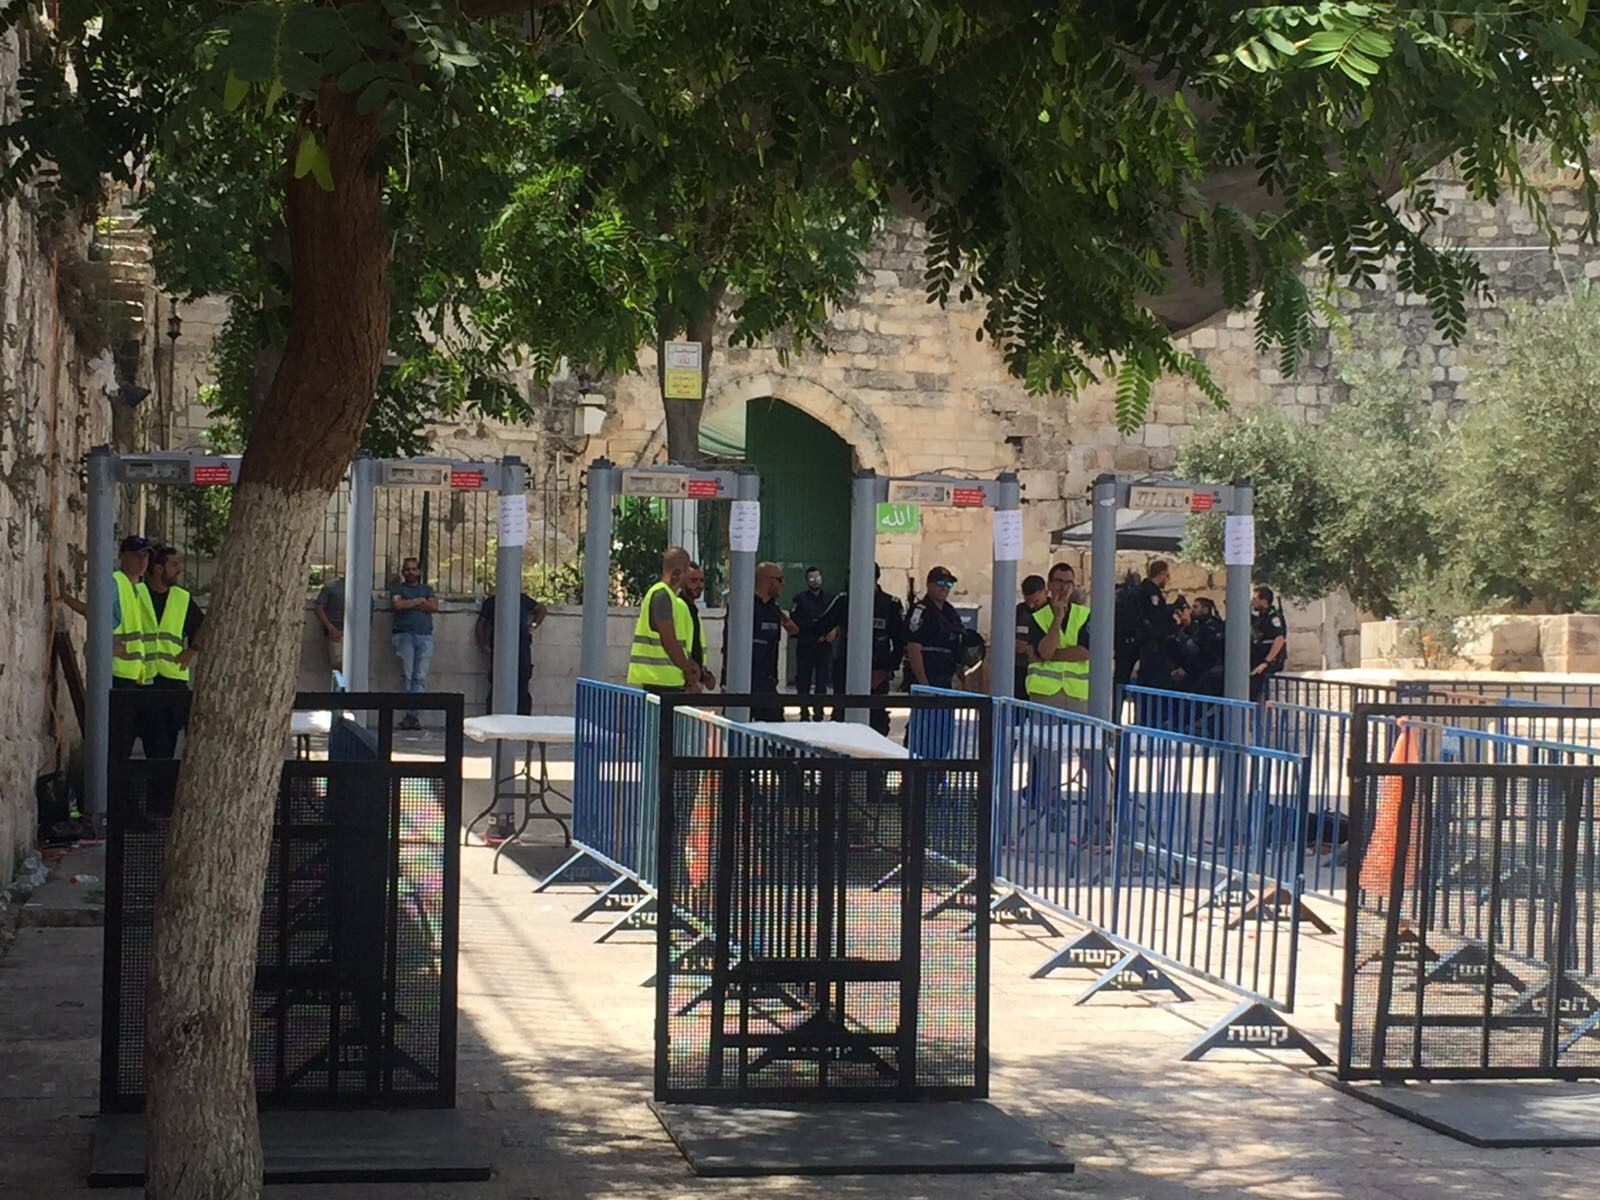 77% of Israelis see removal of Temple Mount metal detectors as capitulation